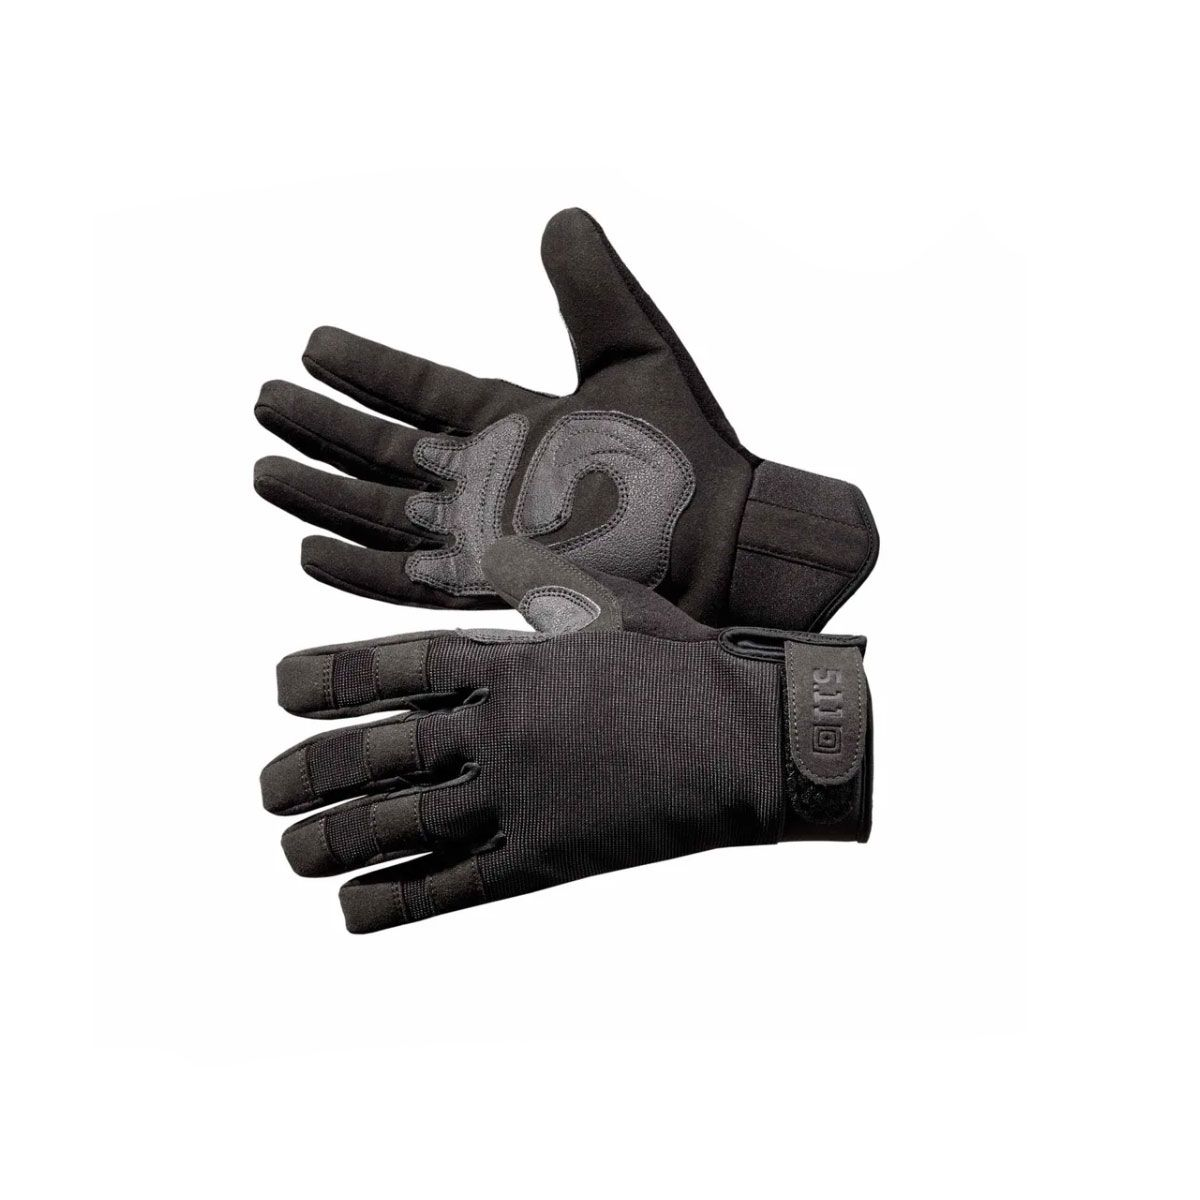 Luva Tatica Tac A2 Glove Black 5.11 Tactical